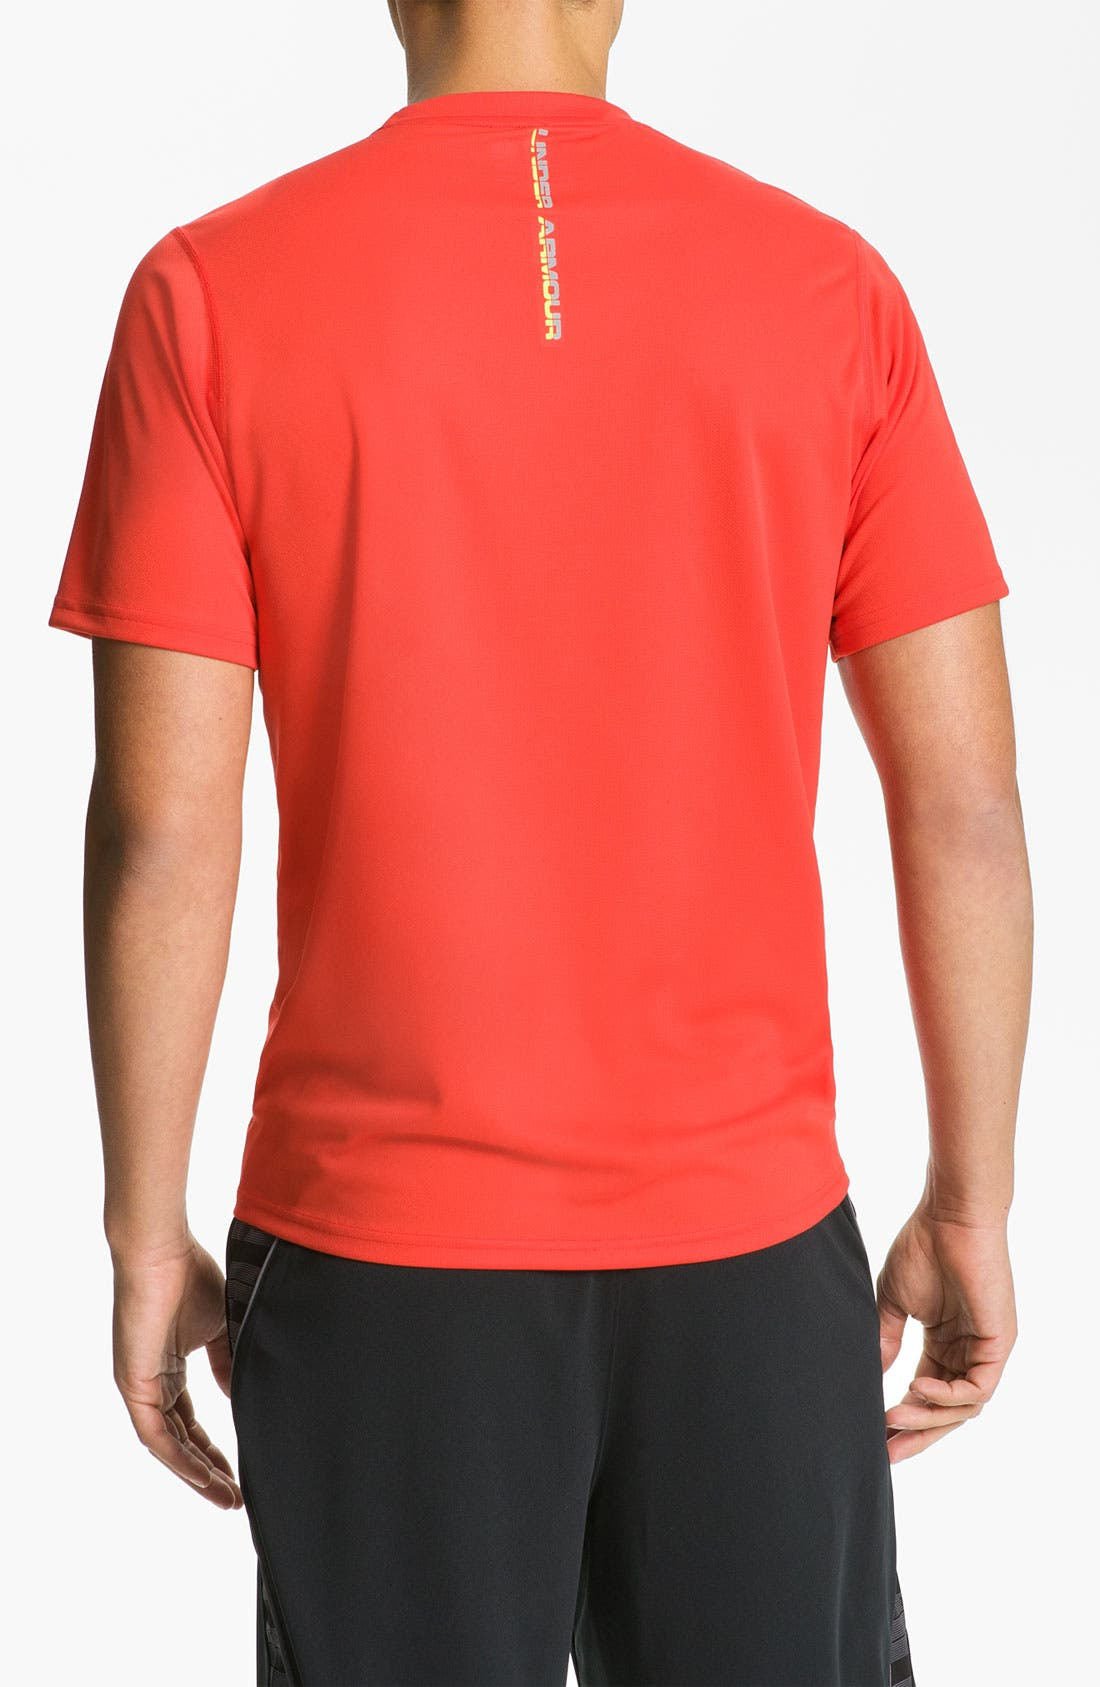 Alternate Image 2  - Under Armour 'Run' HeatGear® Short Sleeve T-Shirt